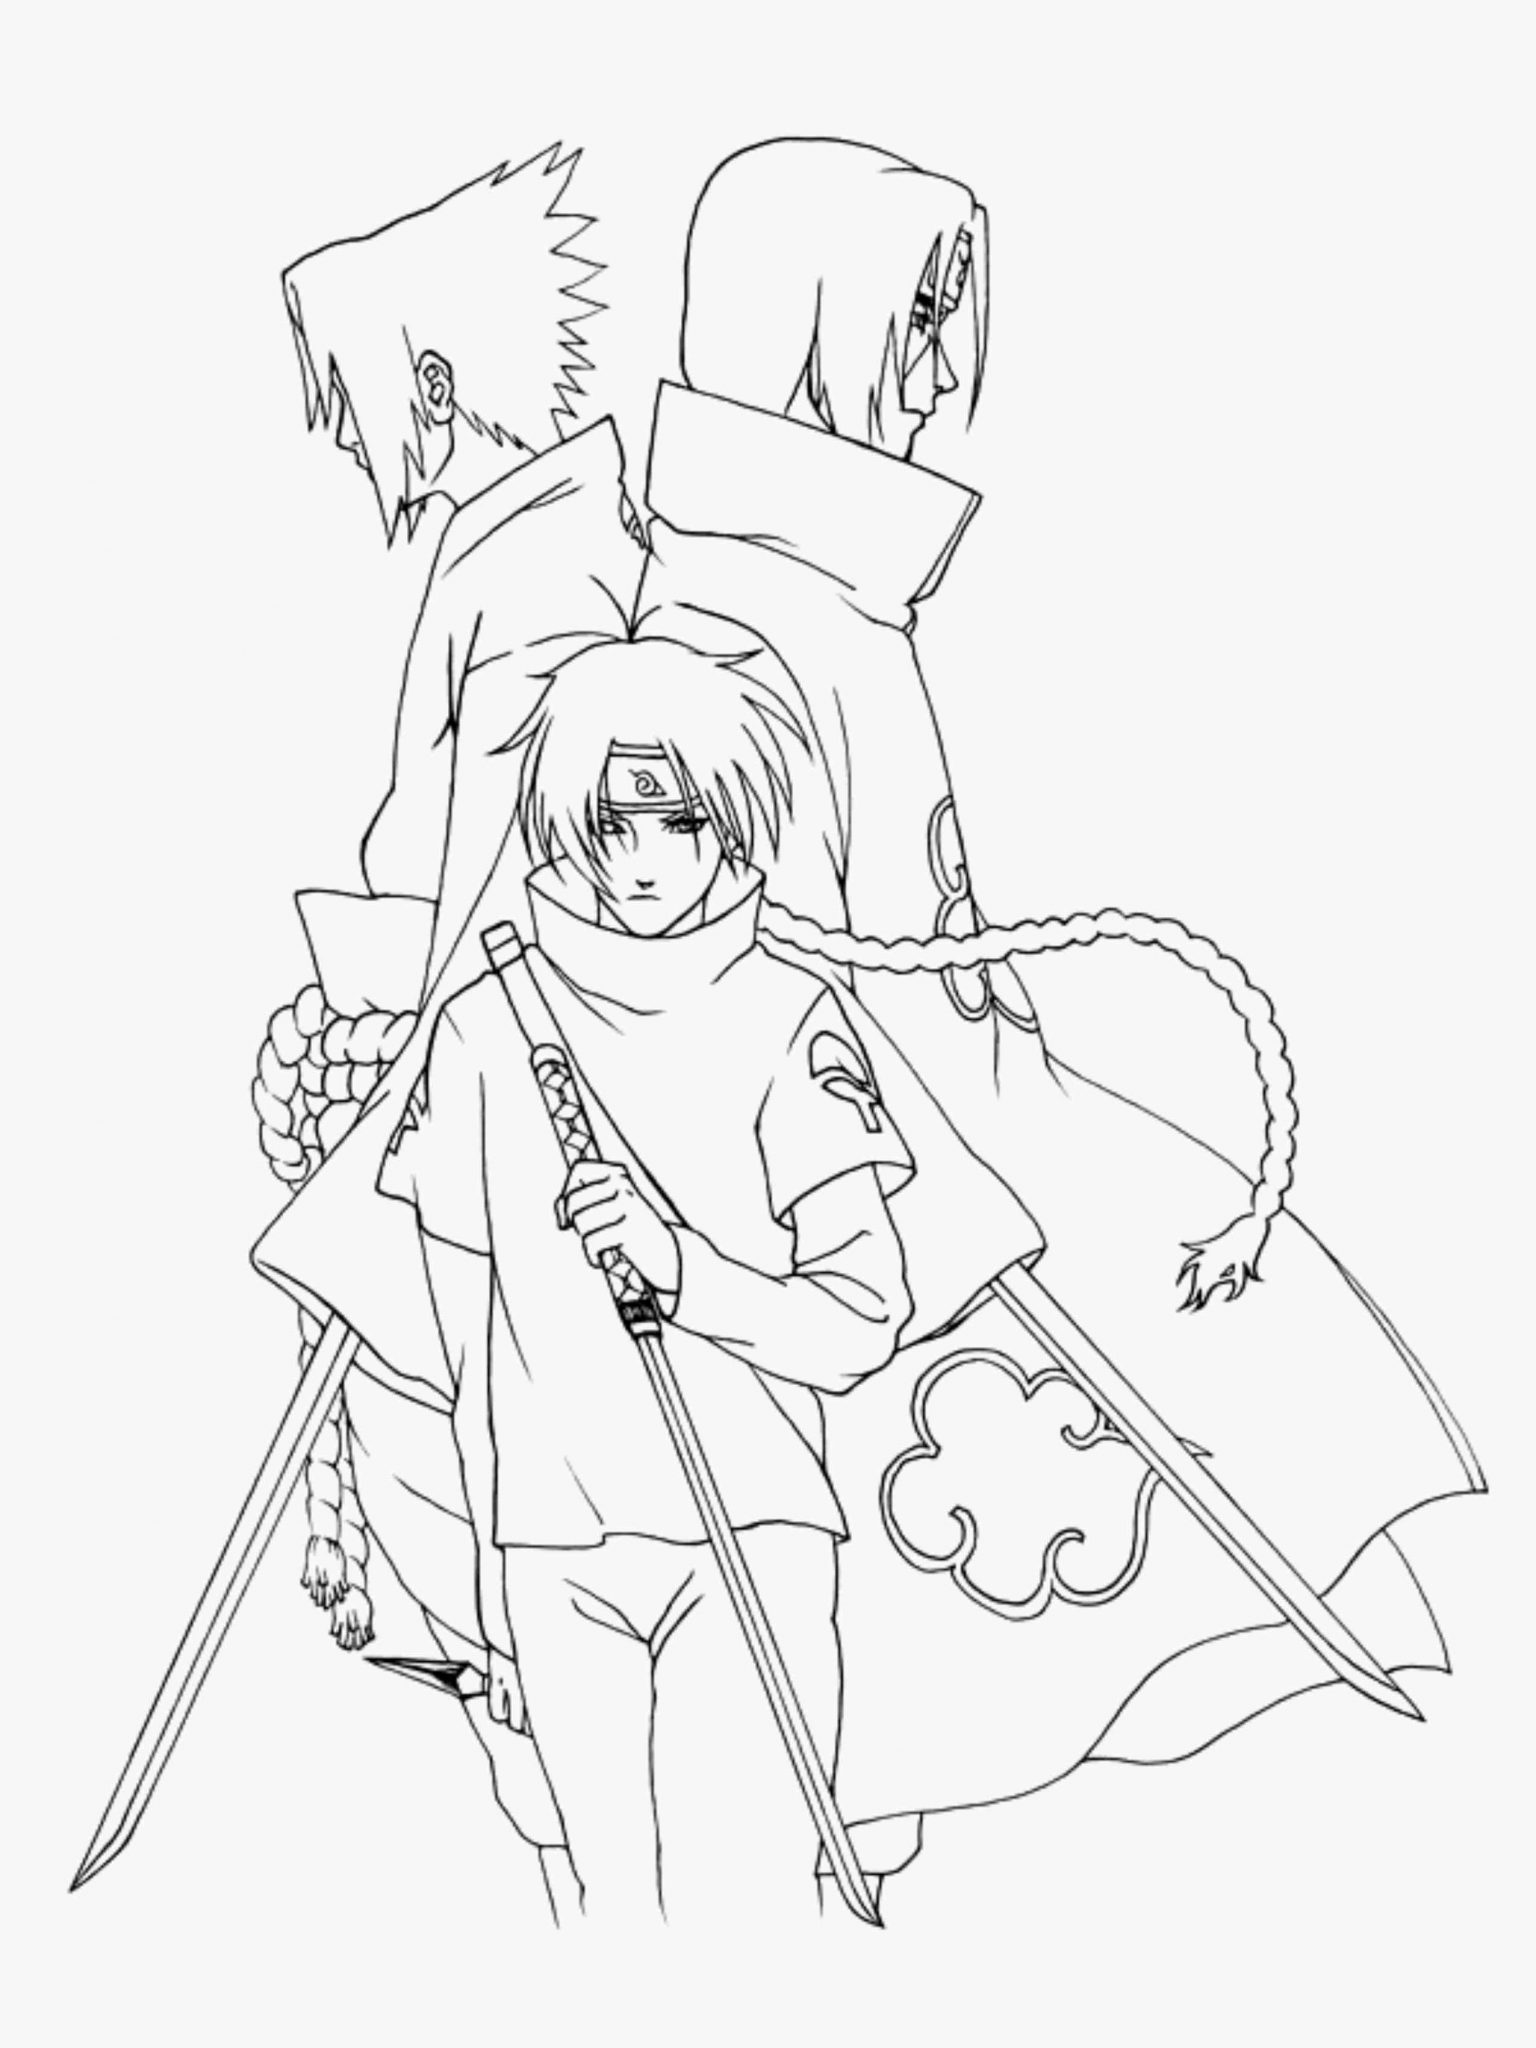 naruto coloring page 25 picture free printable naruto coloring pages coloring naruto page coloring